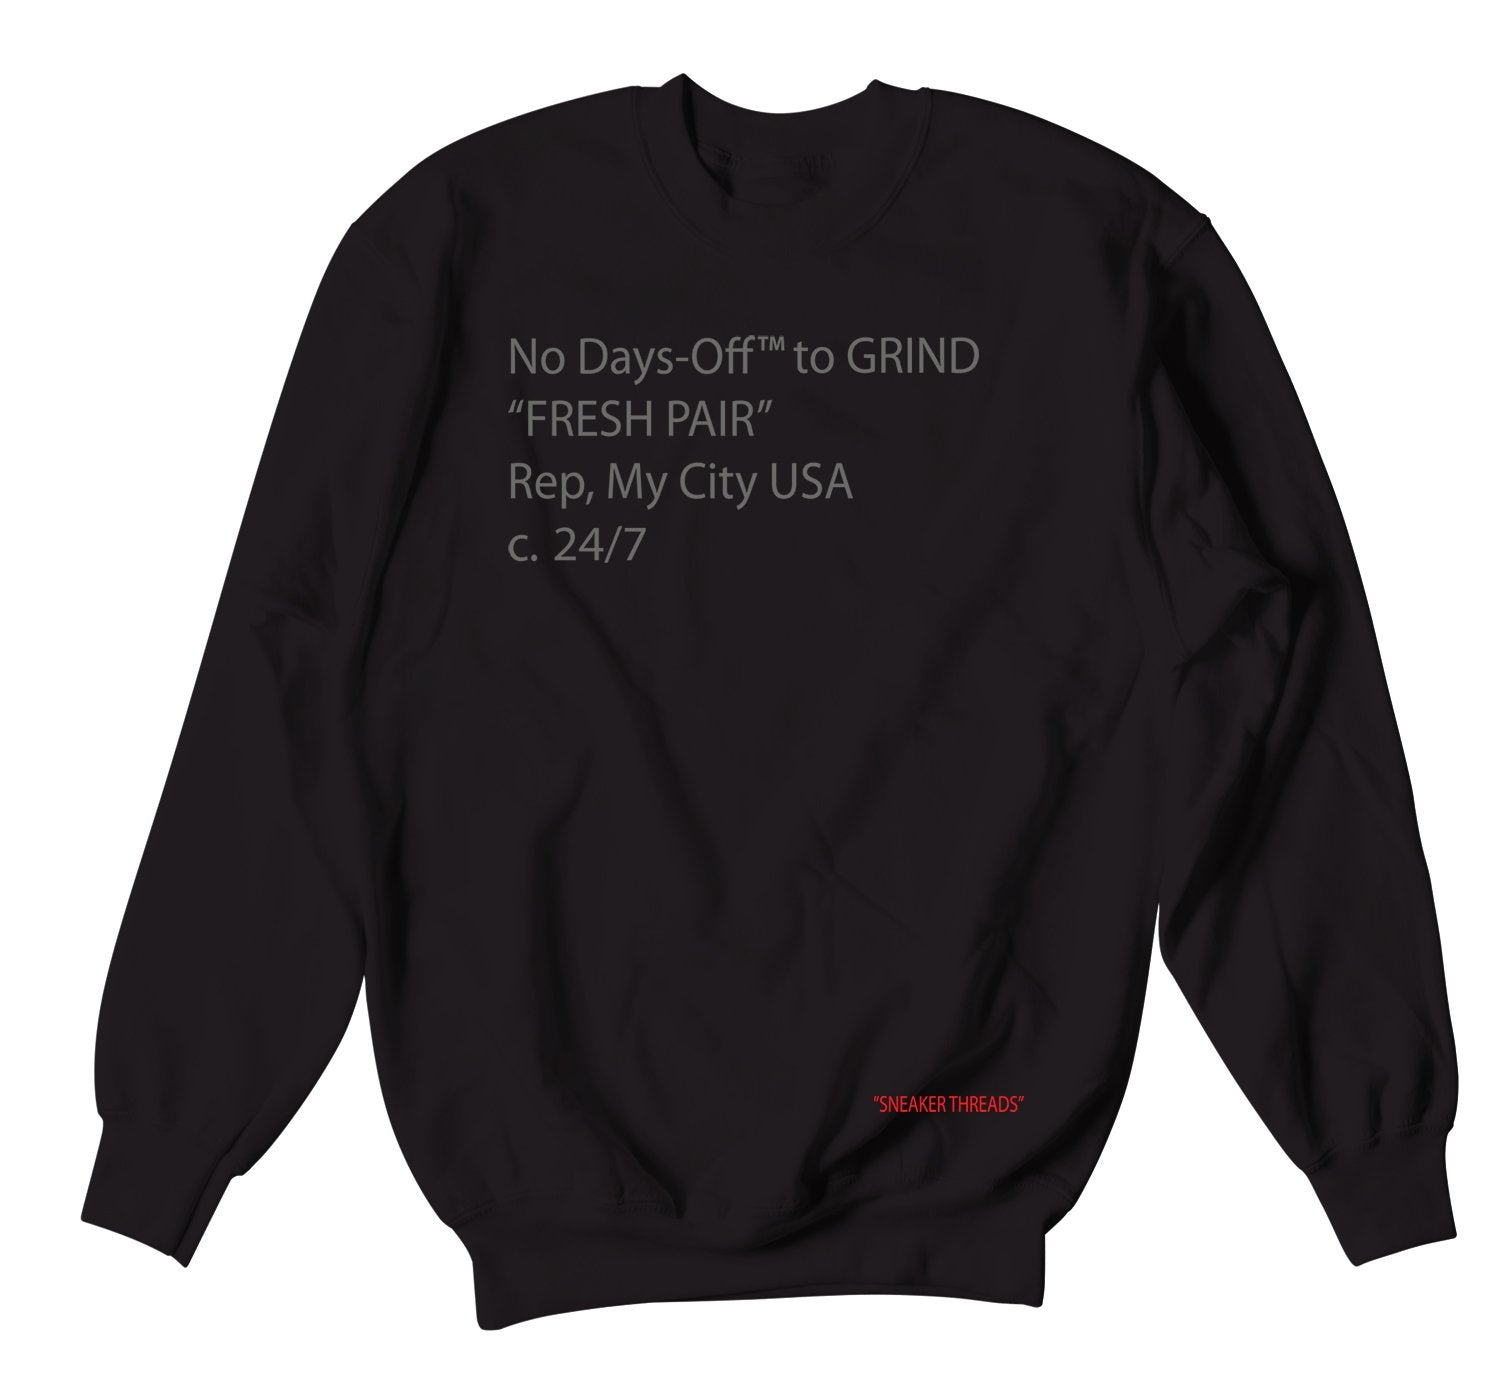 crewnecks designed to match the Jordan 14 black ferrari shoe collection